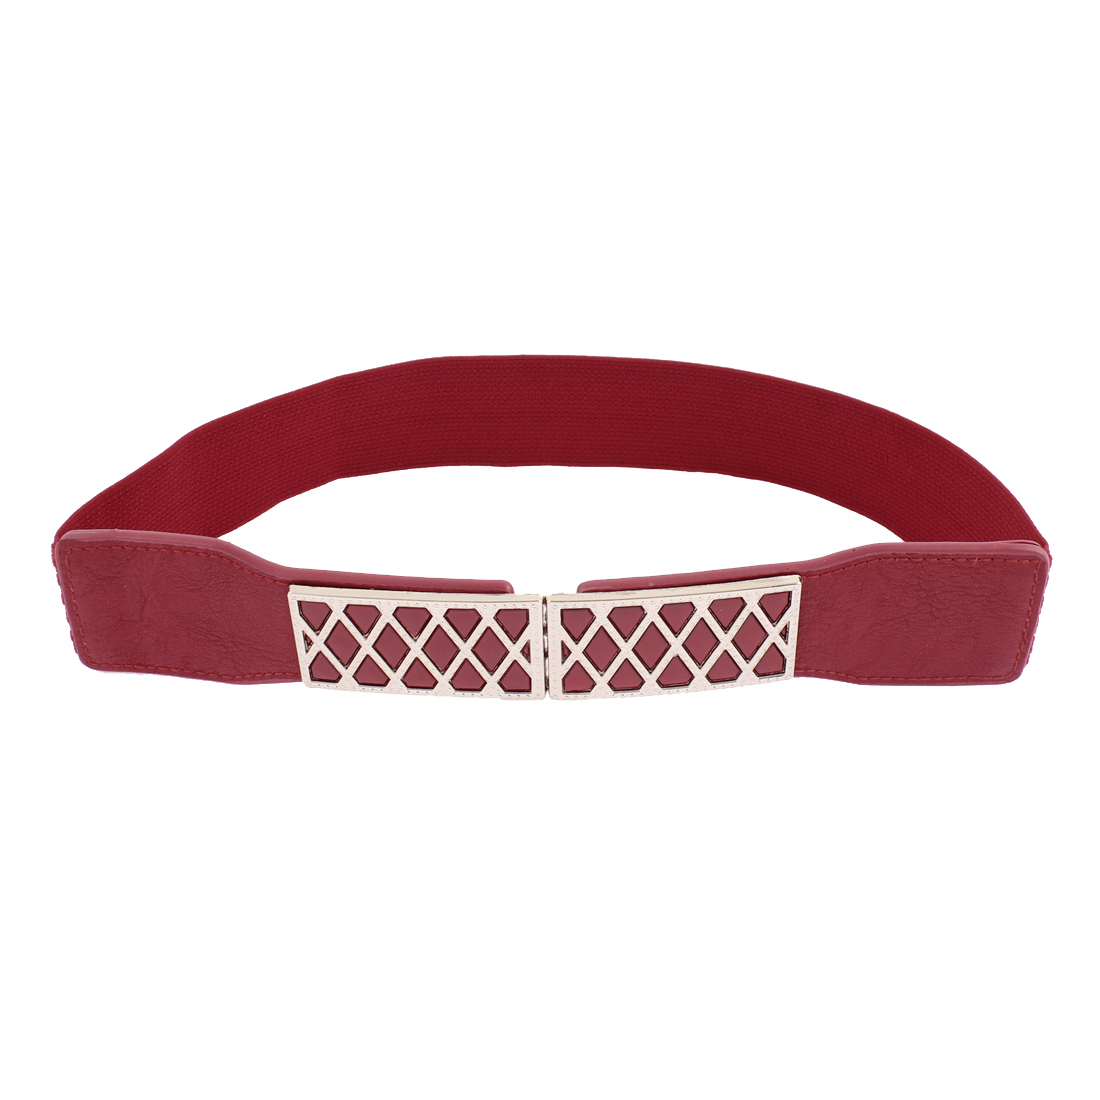 Elastic Stretch Waistband Waist Belt 61cm Long Red for Women